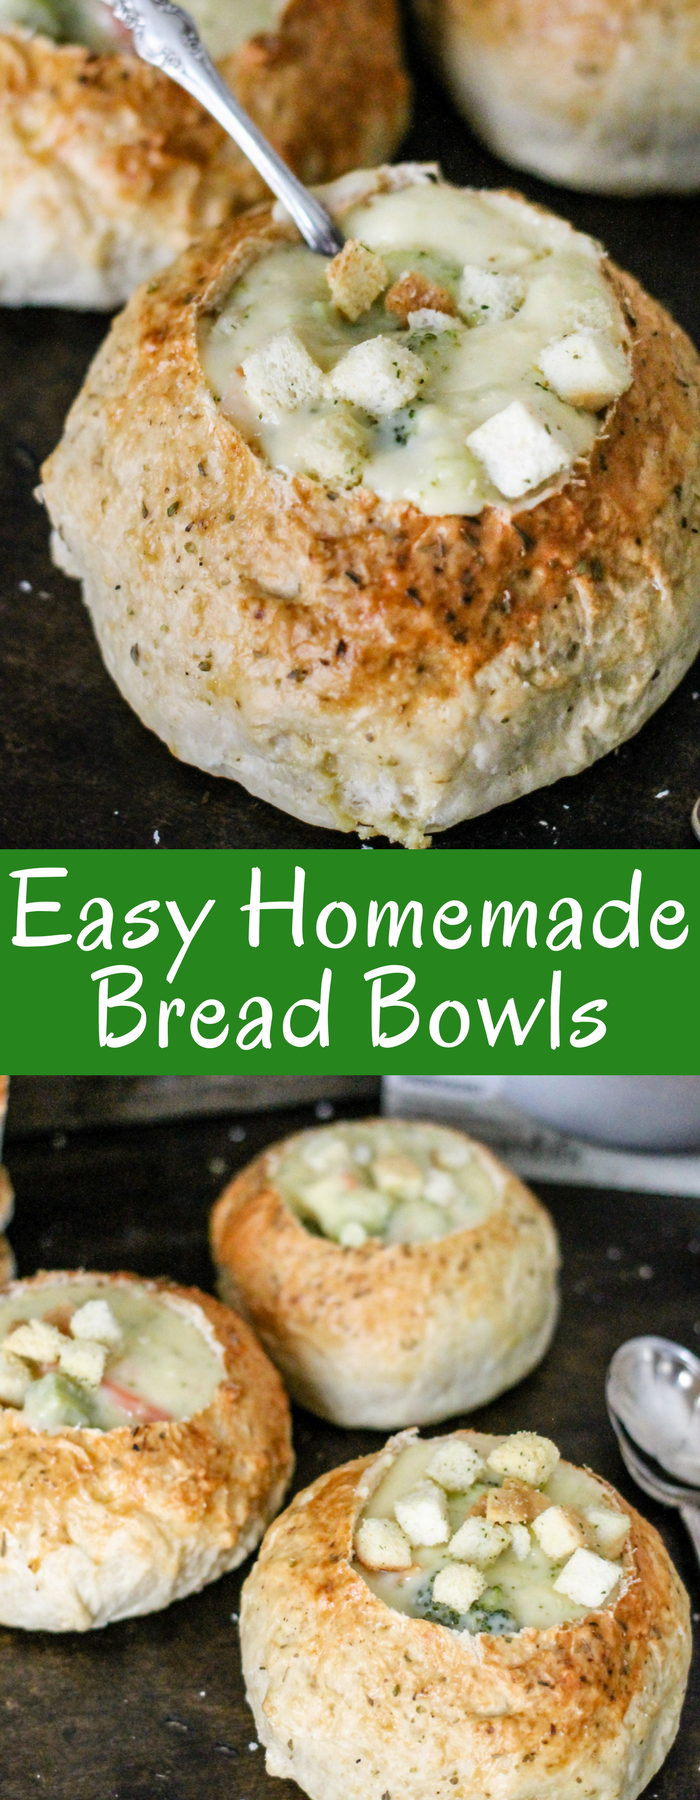 With only a handful of ingredients, this Easy Homemade Bread Bowl recipe is simple, tasty, and freezes well. Fill with your favorite soup, like Broccoli Cheddar, and dinner is served!